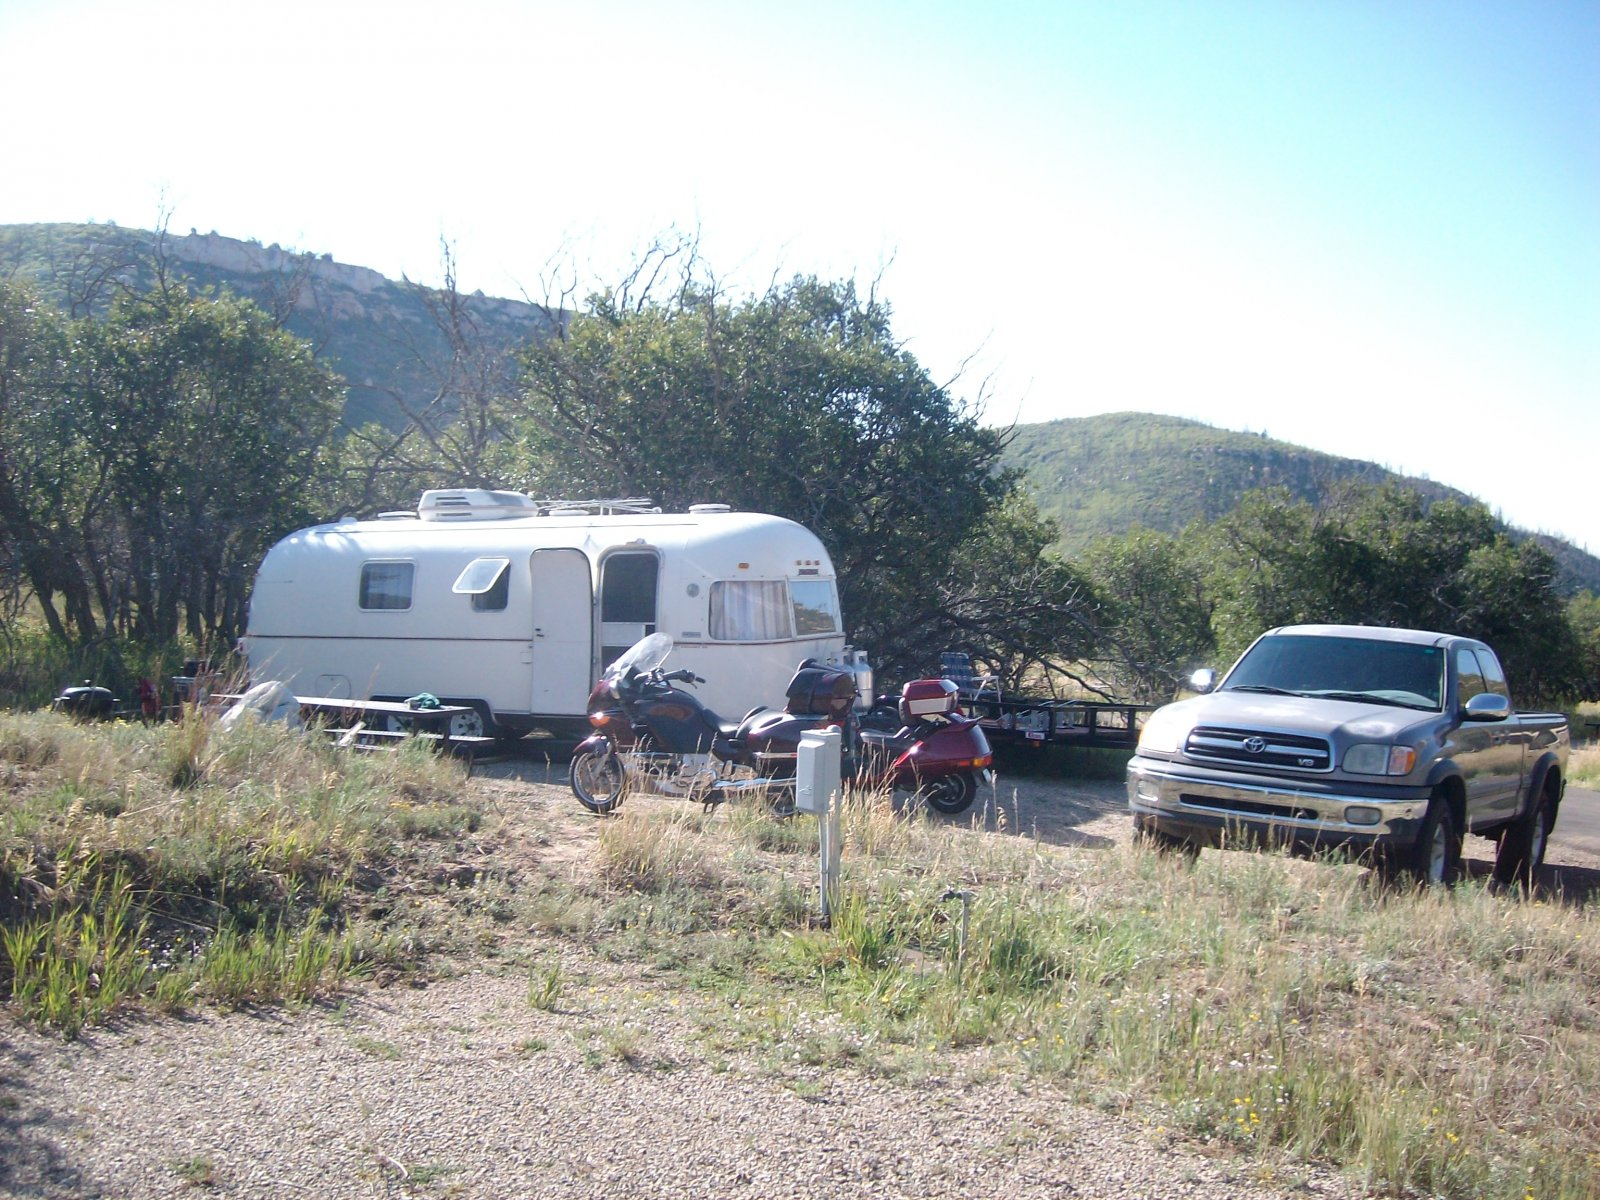 Click image for larger version  Name:6Campsite2.jpg Views:75 Size:440.0 KB ID:168180